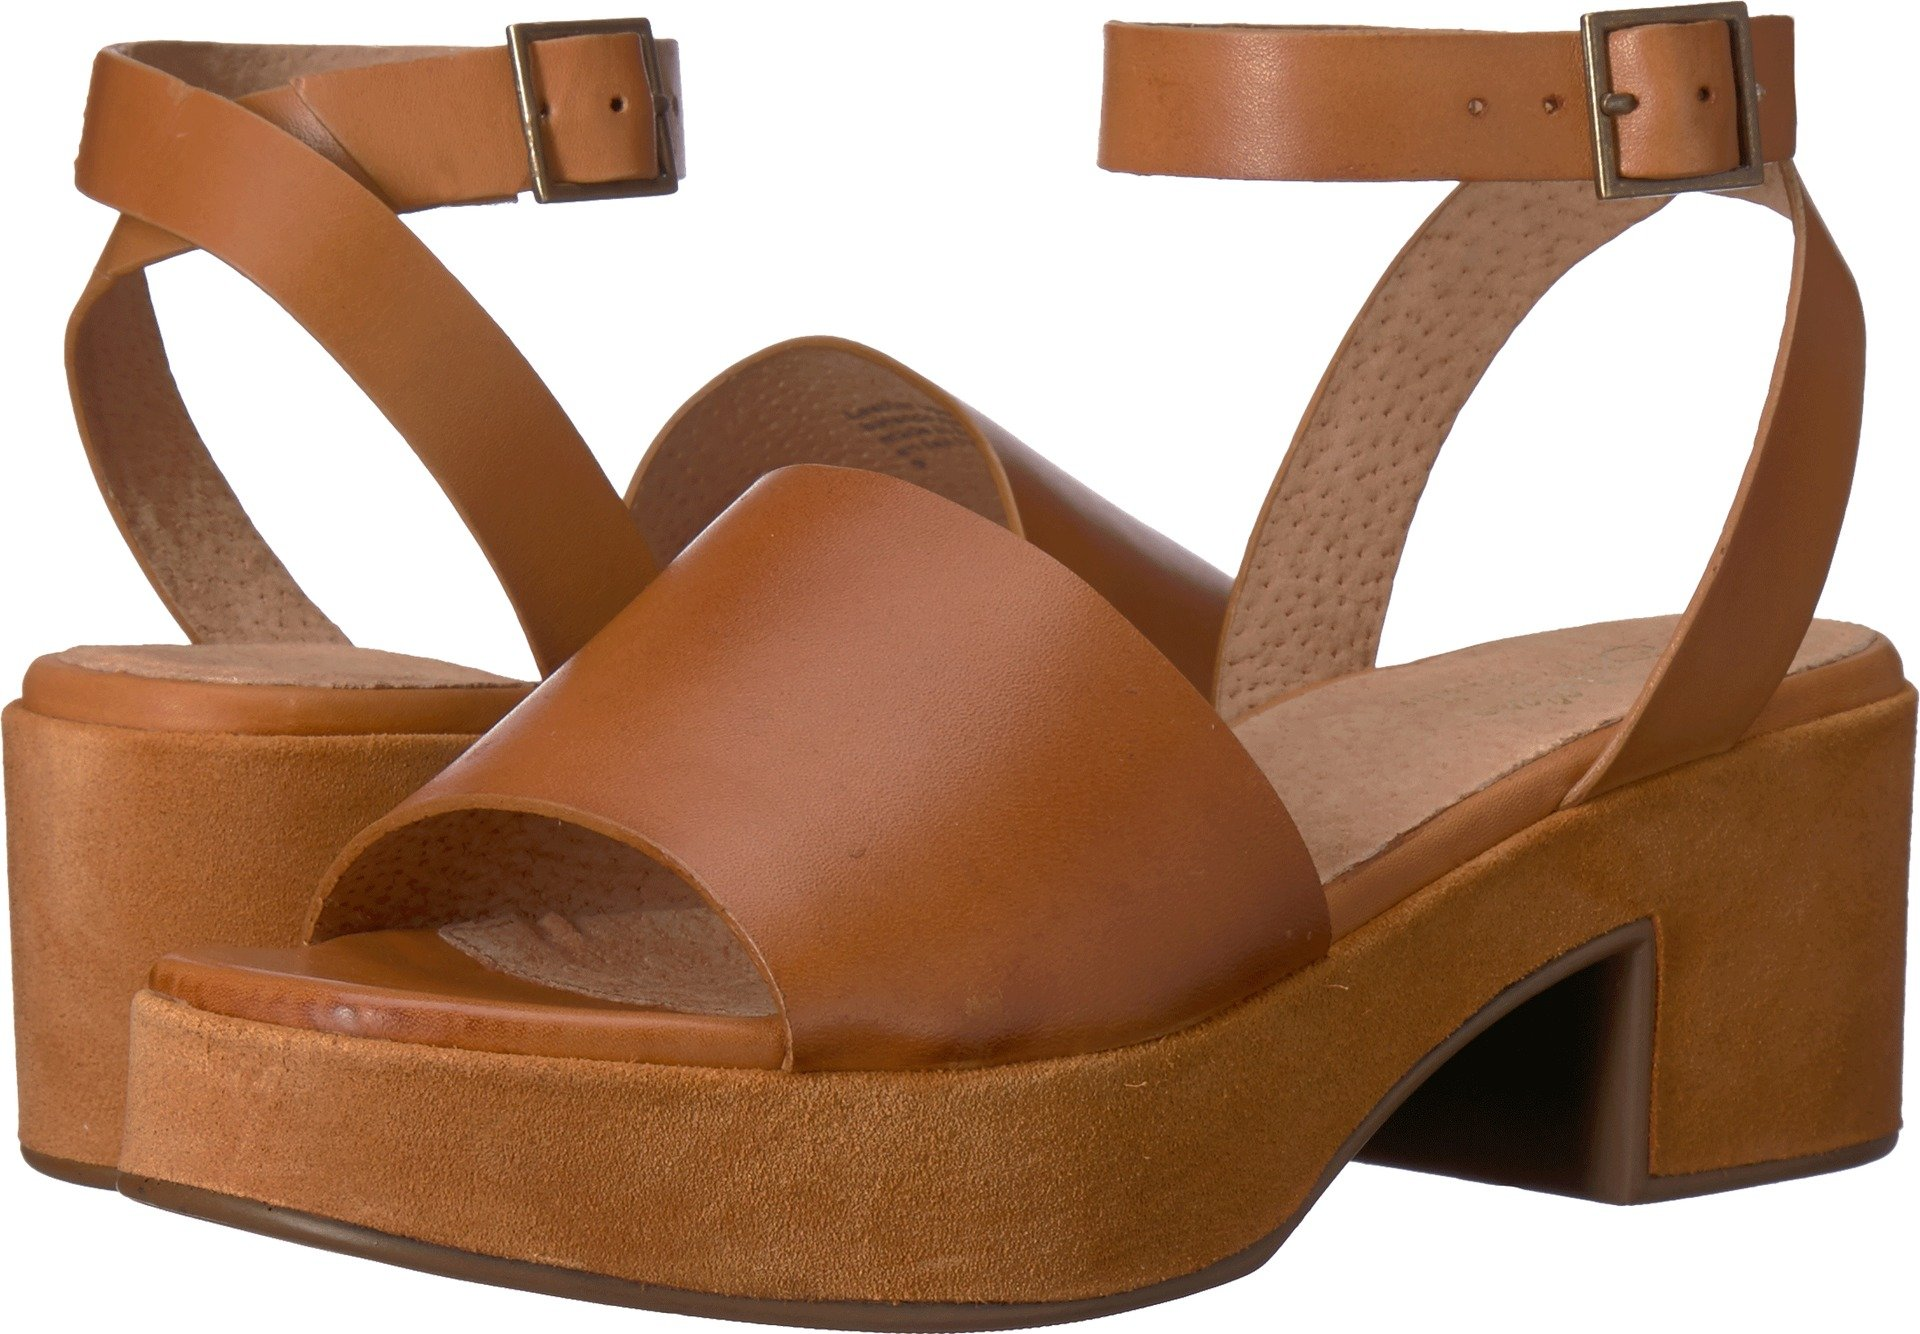 Seychelles Women's CALMING Influence Tan Leather/Suede 6.5 M US